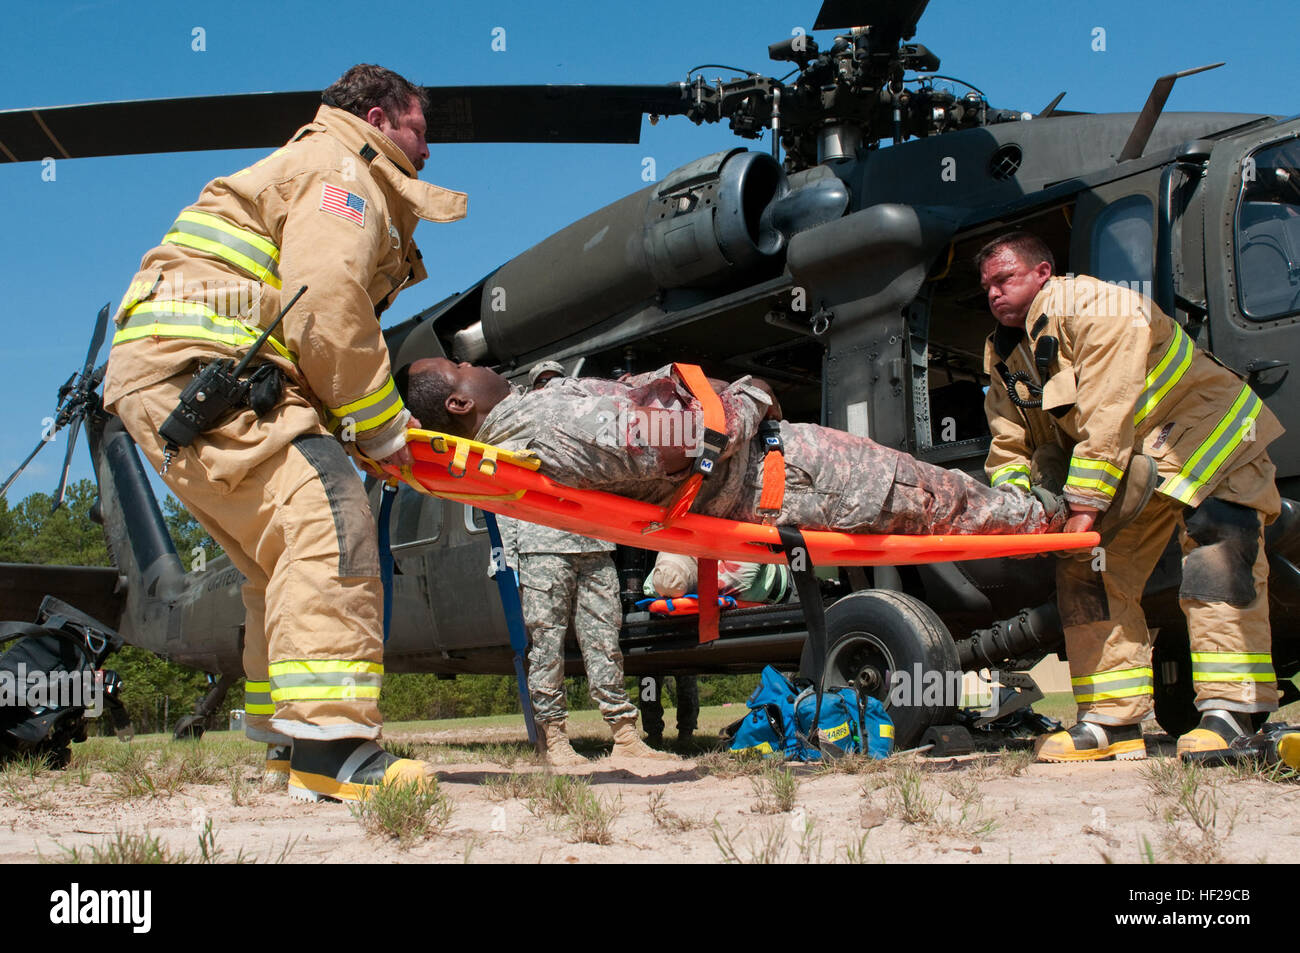 Fire fighters with McCrady Fire Rescue lift a casualty and carry them away from the South Carolina National Guard - Stock Image